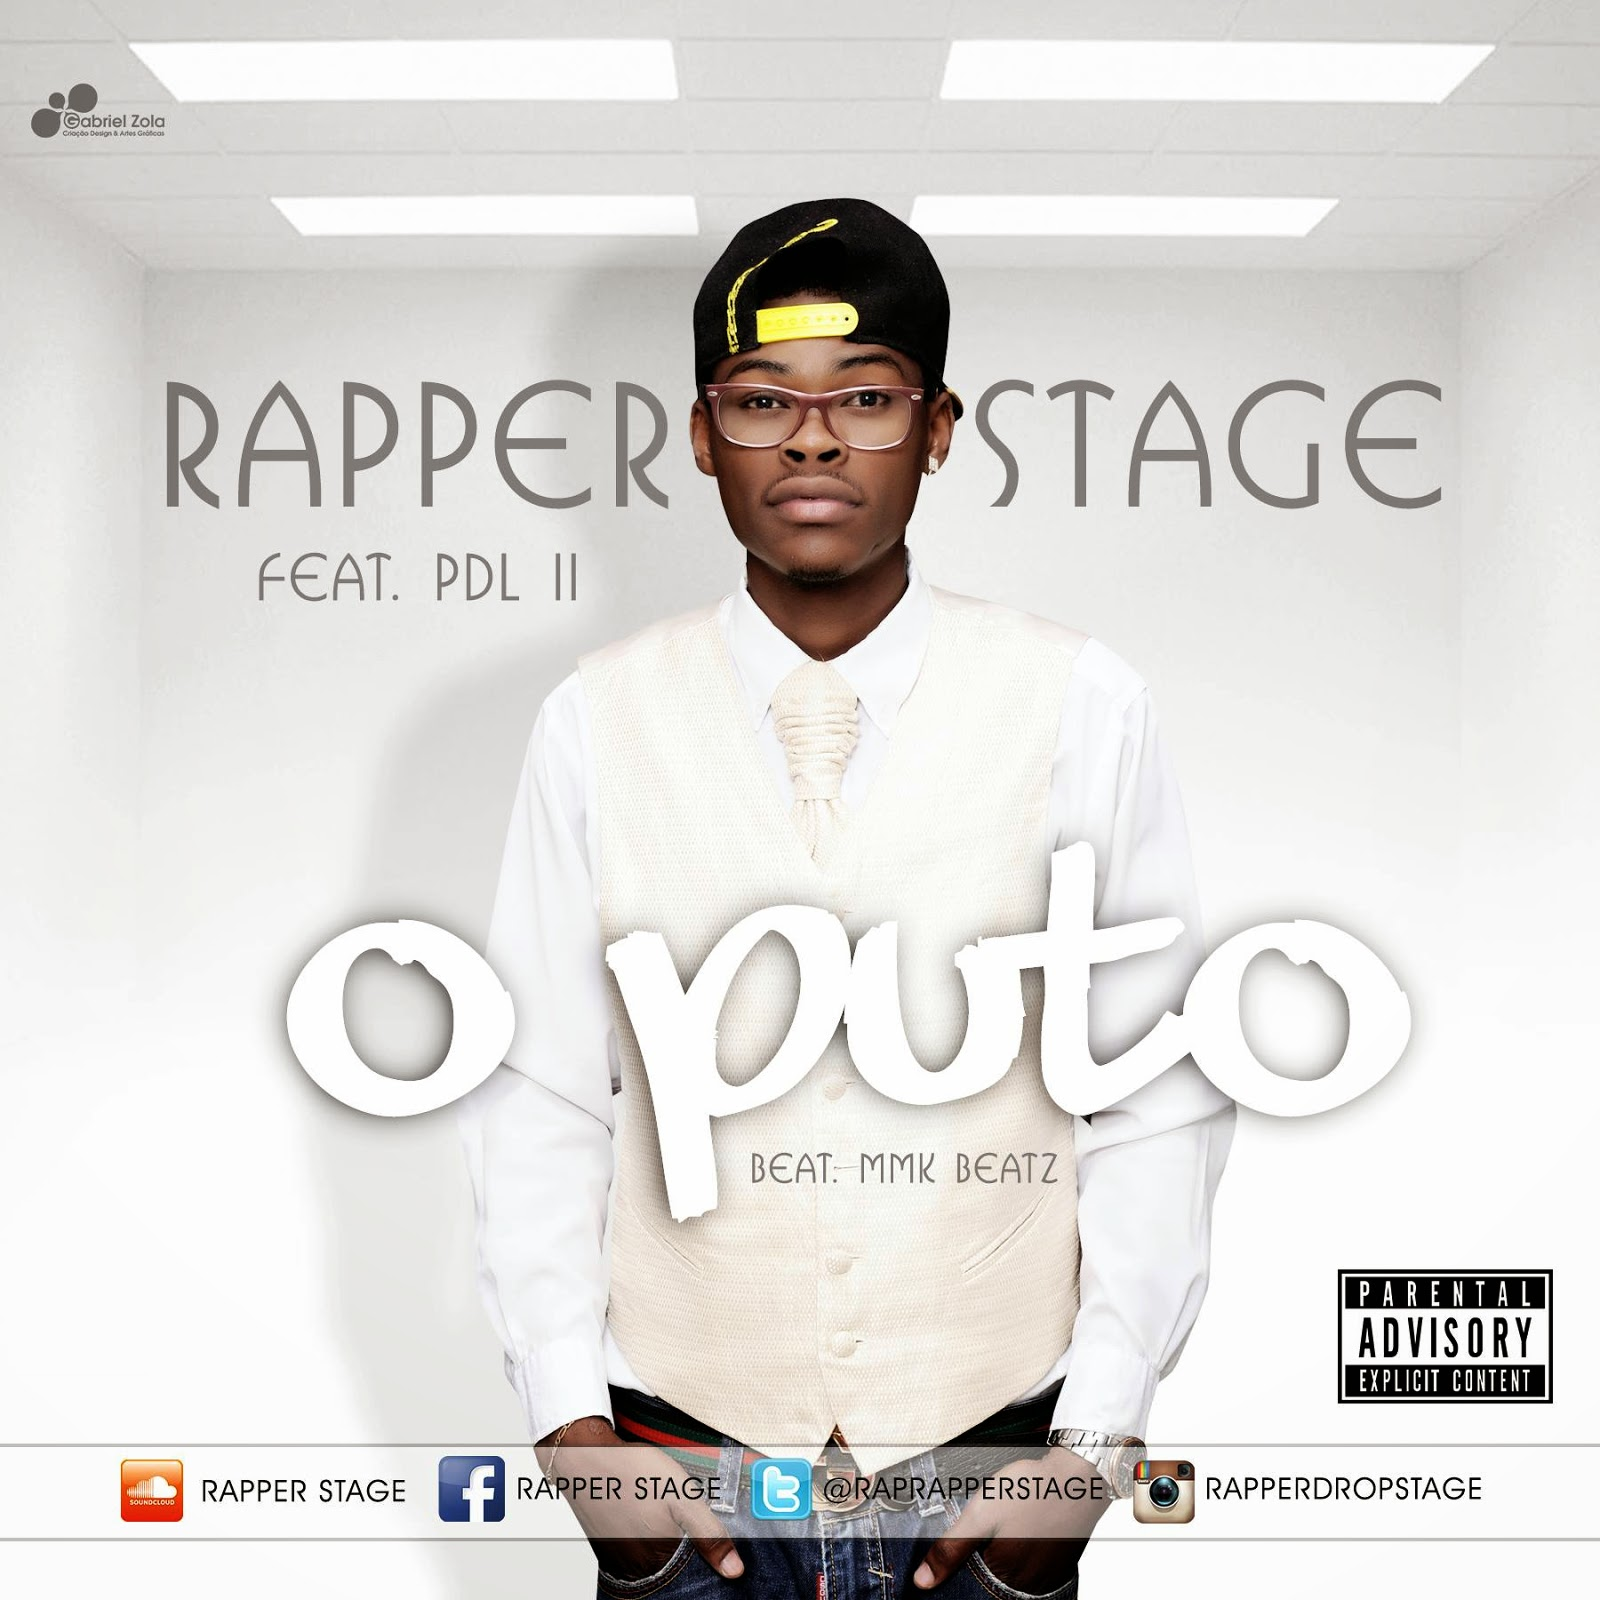 Rapper Stage - O Puto feat. PDL II